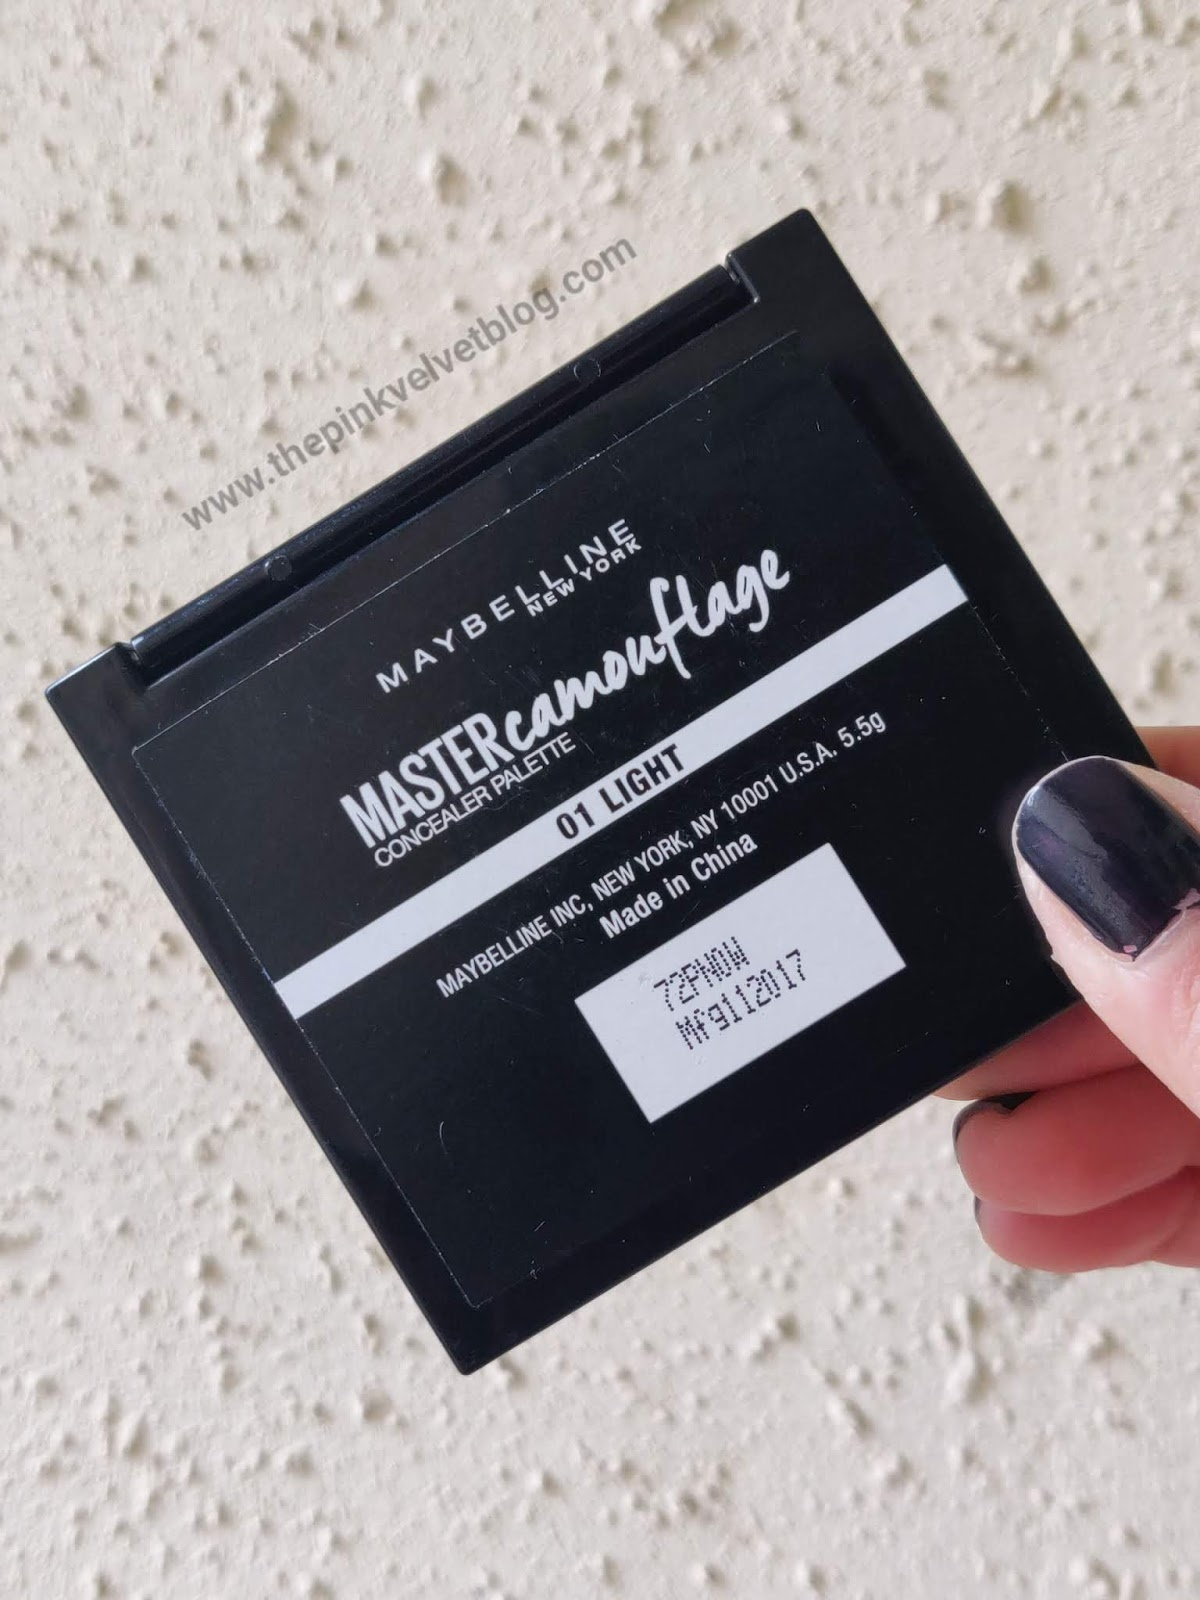 Maybelline MASTER Camouflage Concealer Palette - 01 Light | Review